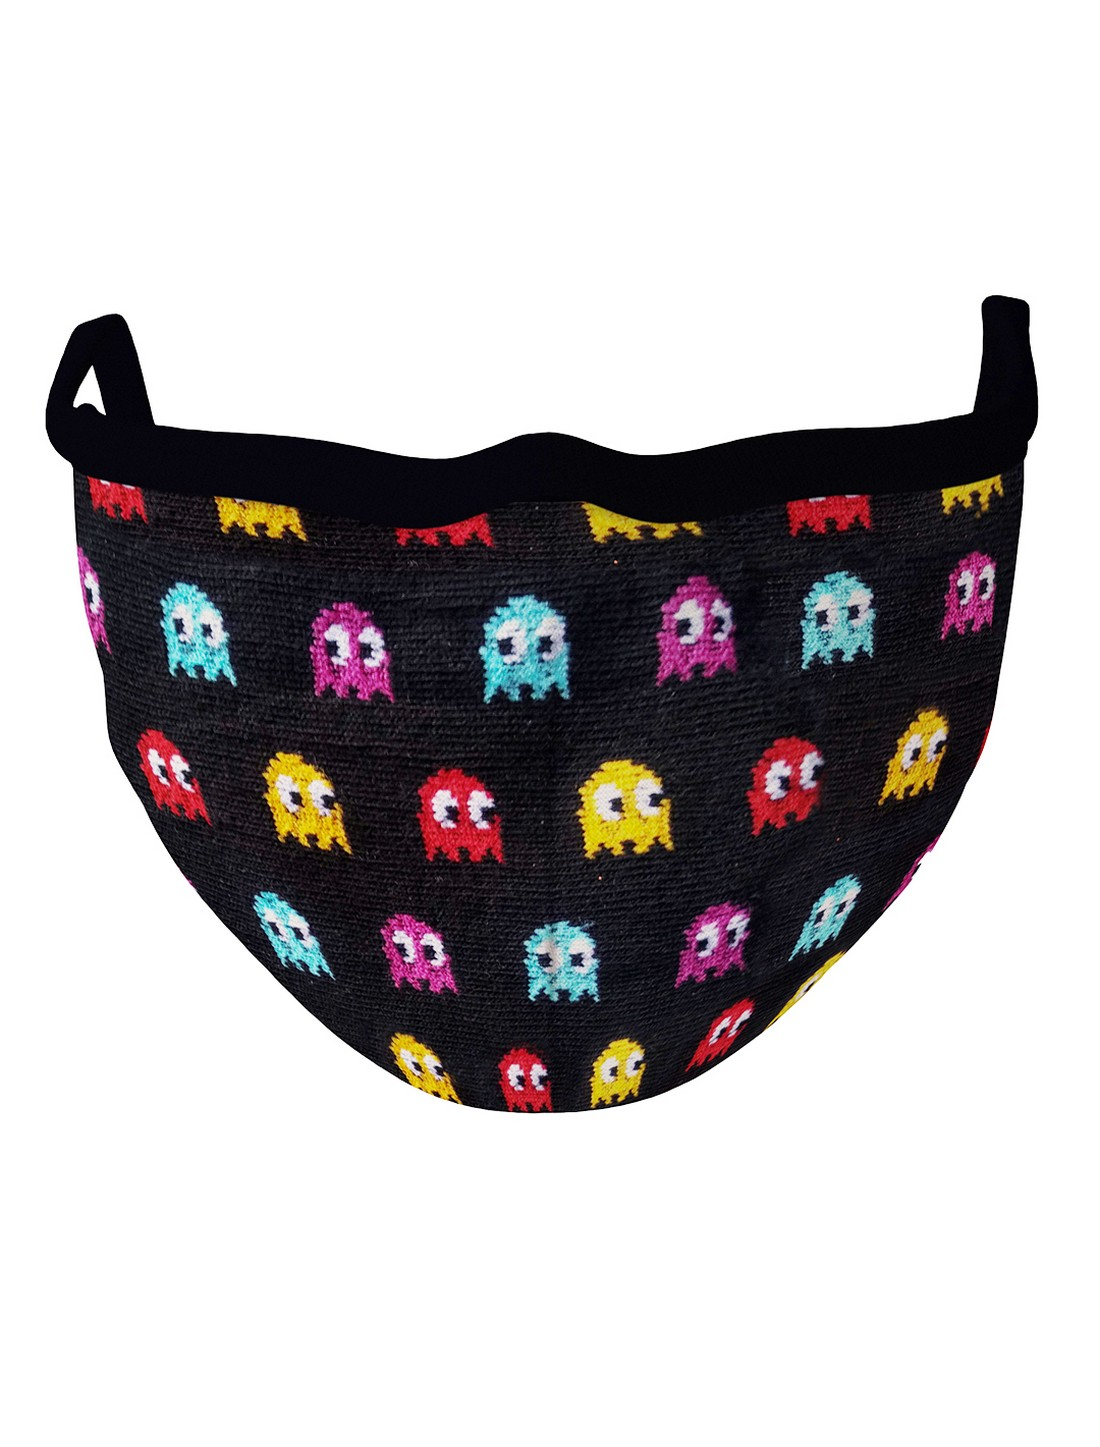 Soxytoes | Soxytoes Black Stylish Protective Super Safe Washable Knitted Cotton Mouth Cover Face Mask